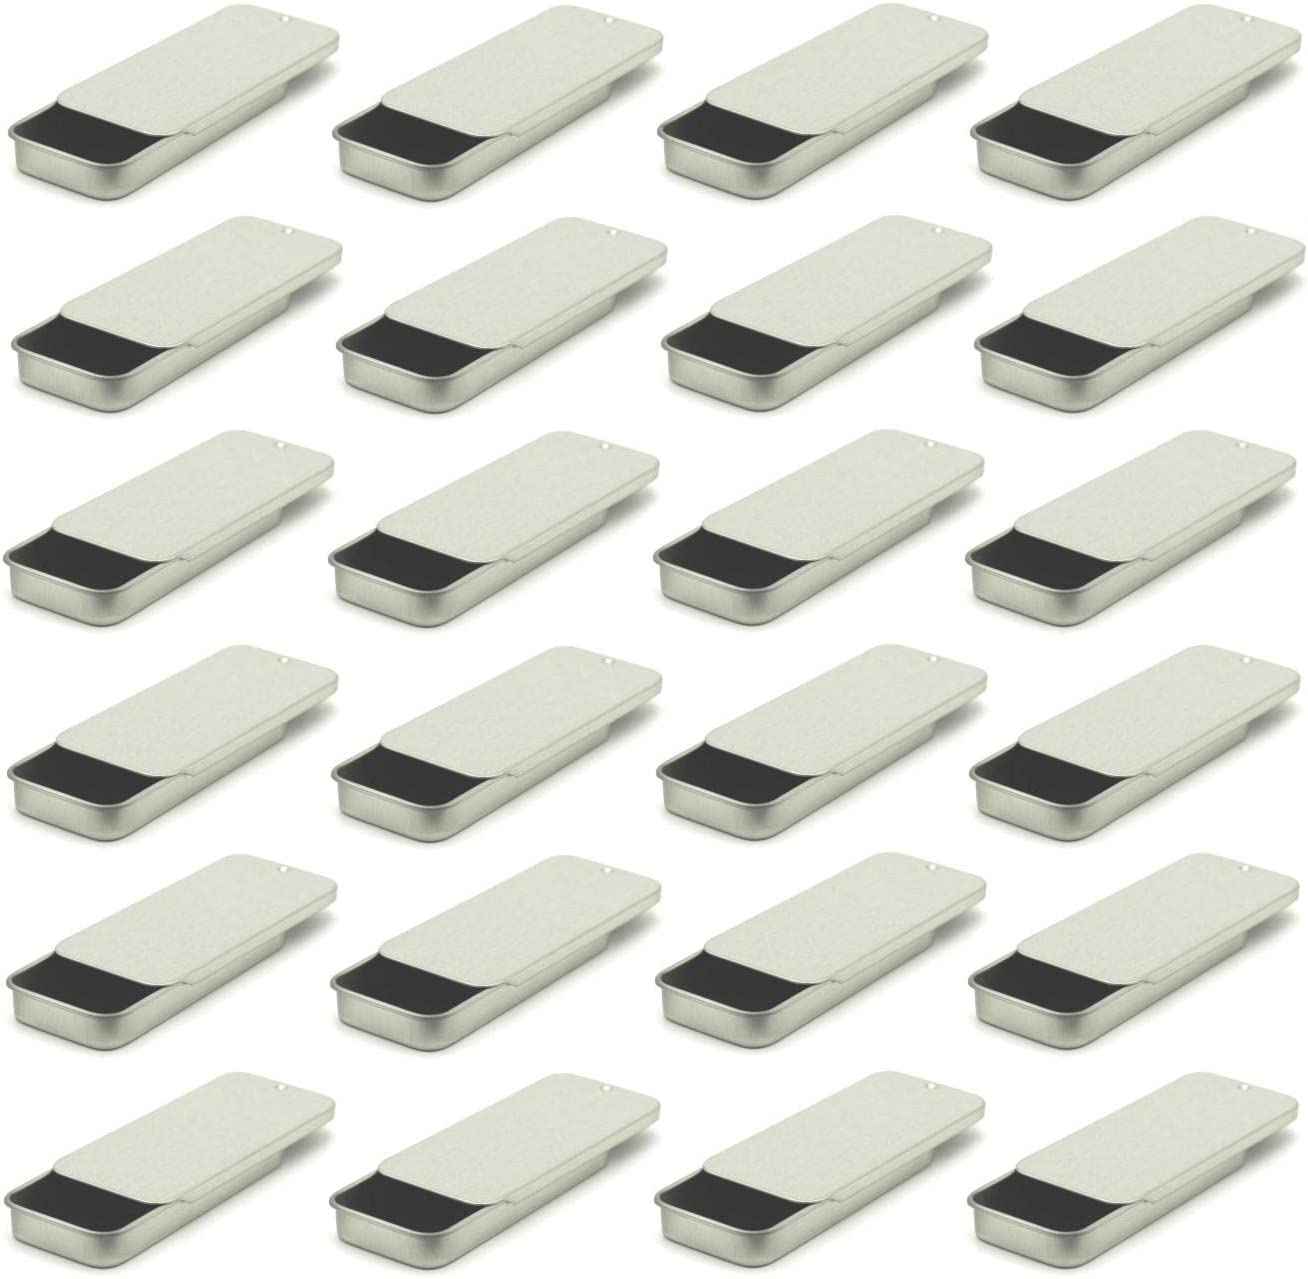 MagnaKoys Max 74% OFF Small Metal Slide Top National products for Crafts Geoca Tin Containers